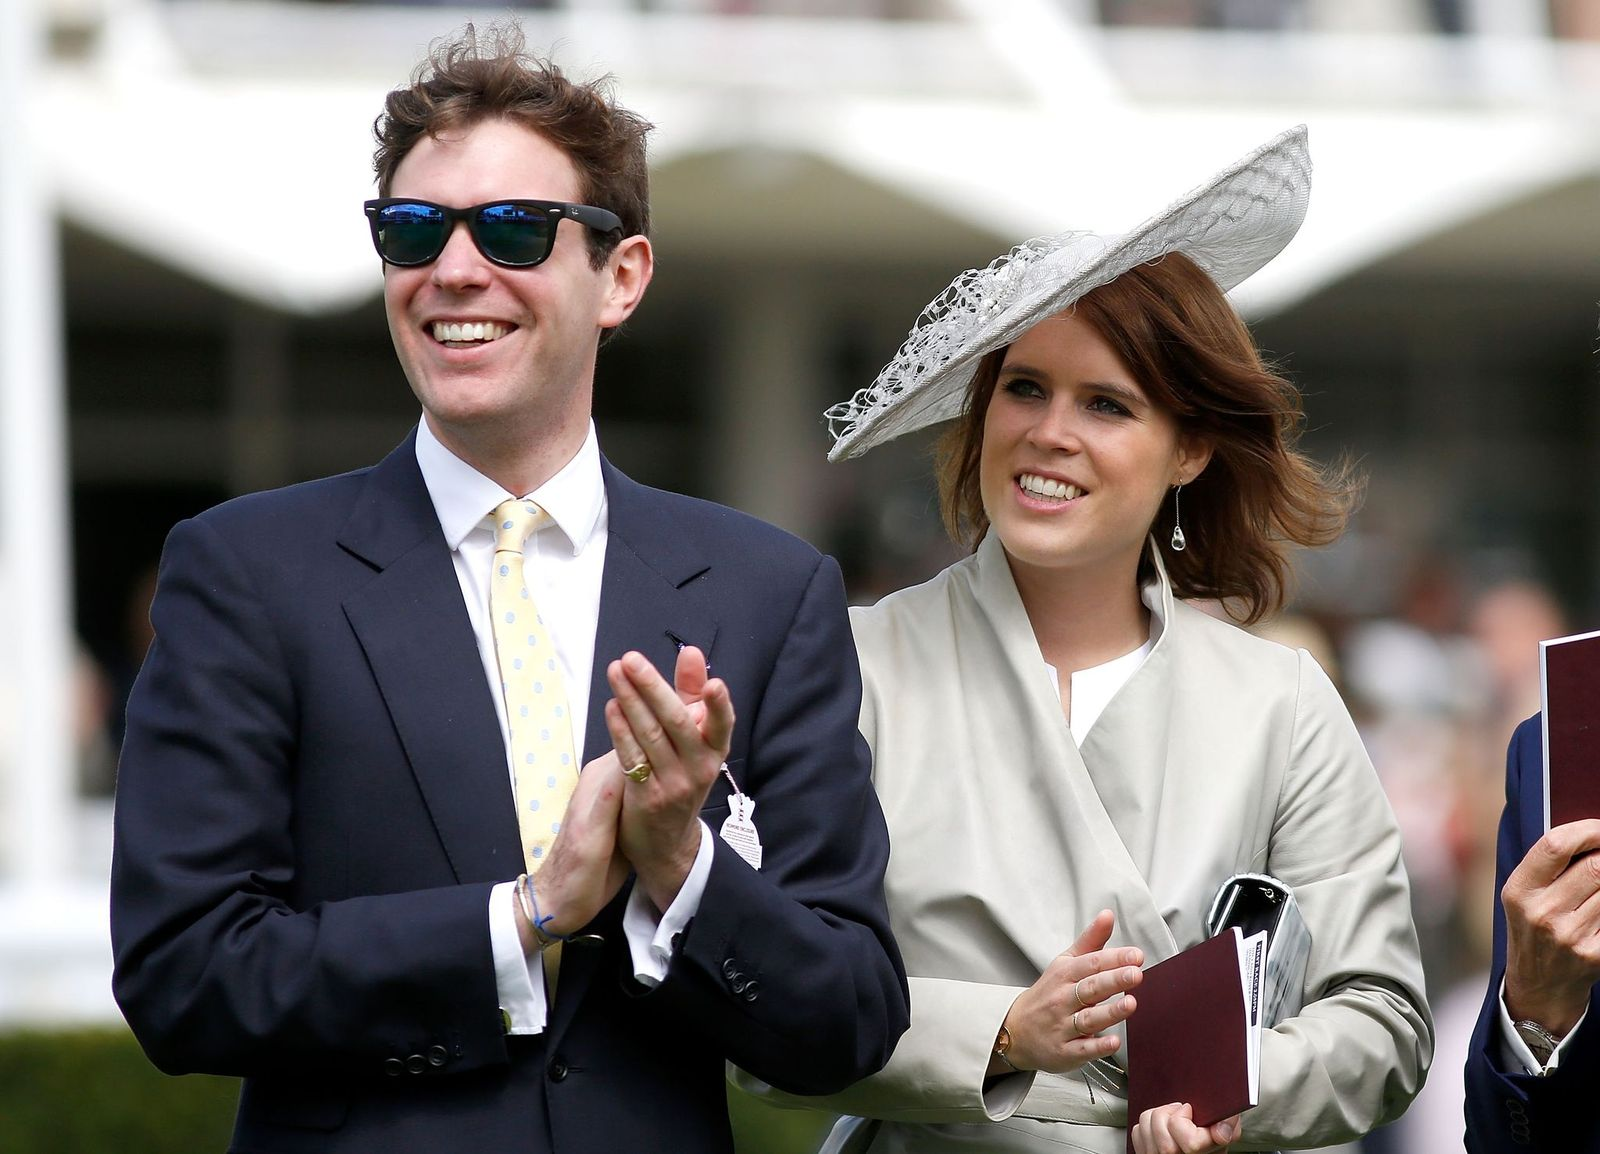 Princess Eugenie and Jack Brooksbank at day three of the Qatar Goodwood Festival at Goodwood Racecourse on July 30, 2015 in Chichester, England. | Photo: Getty Images